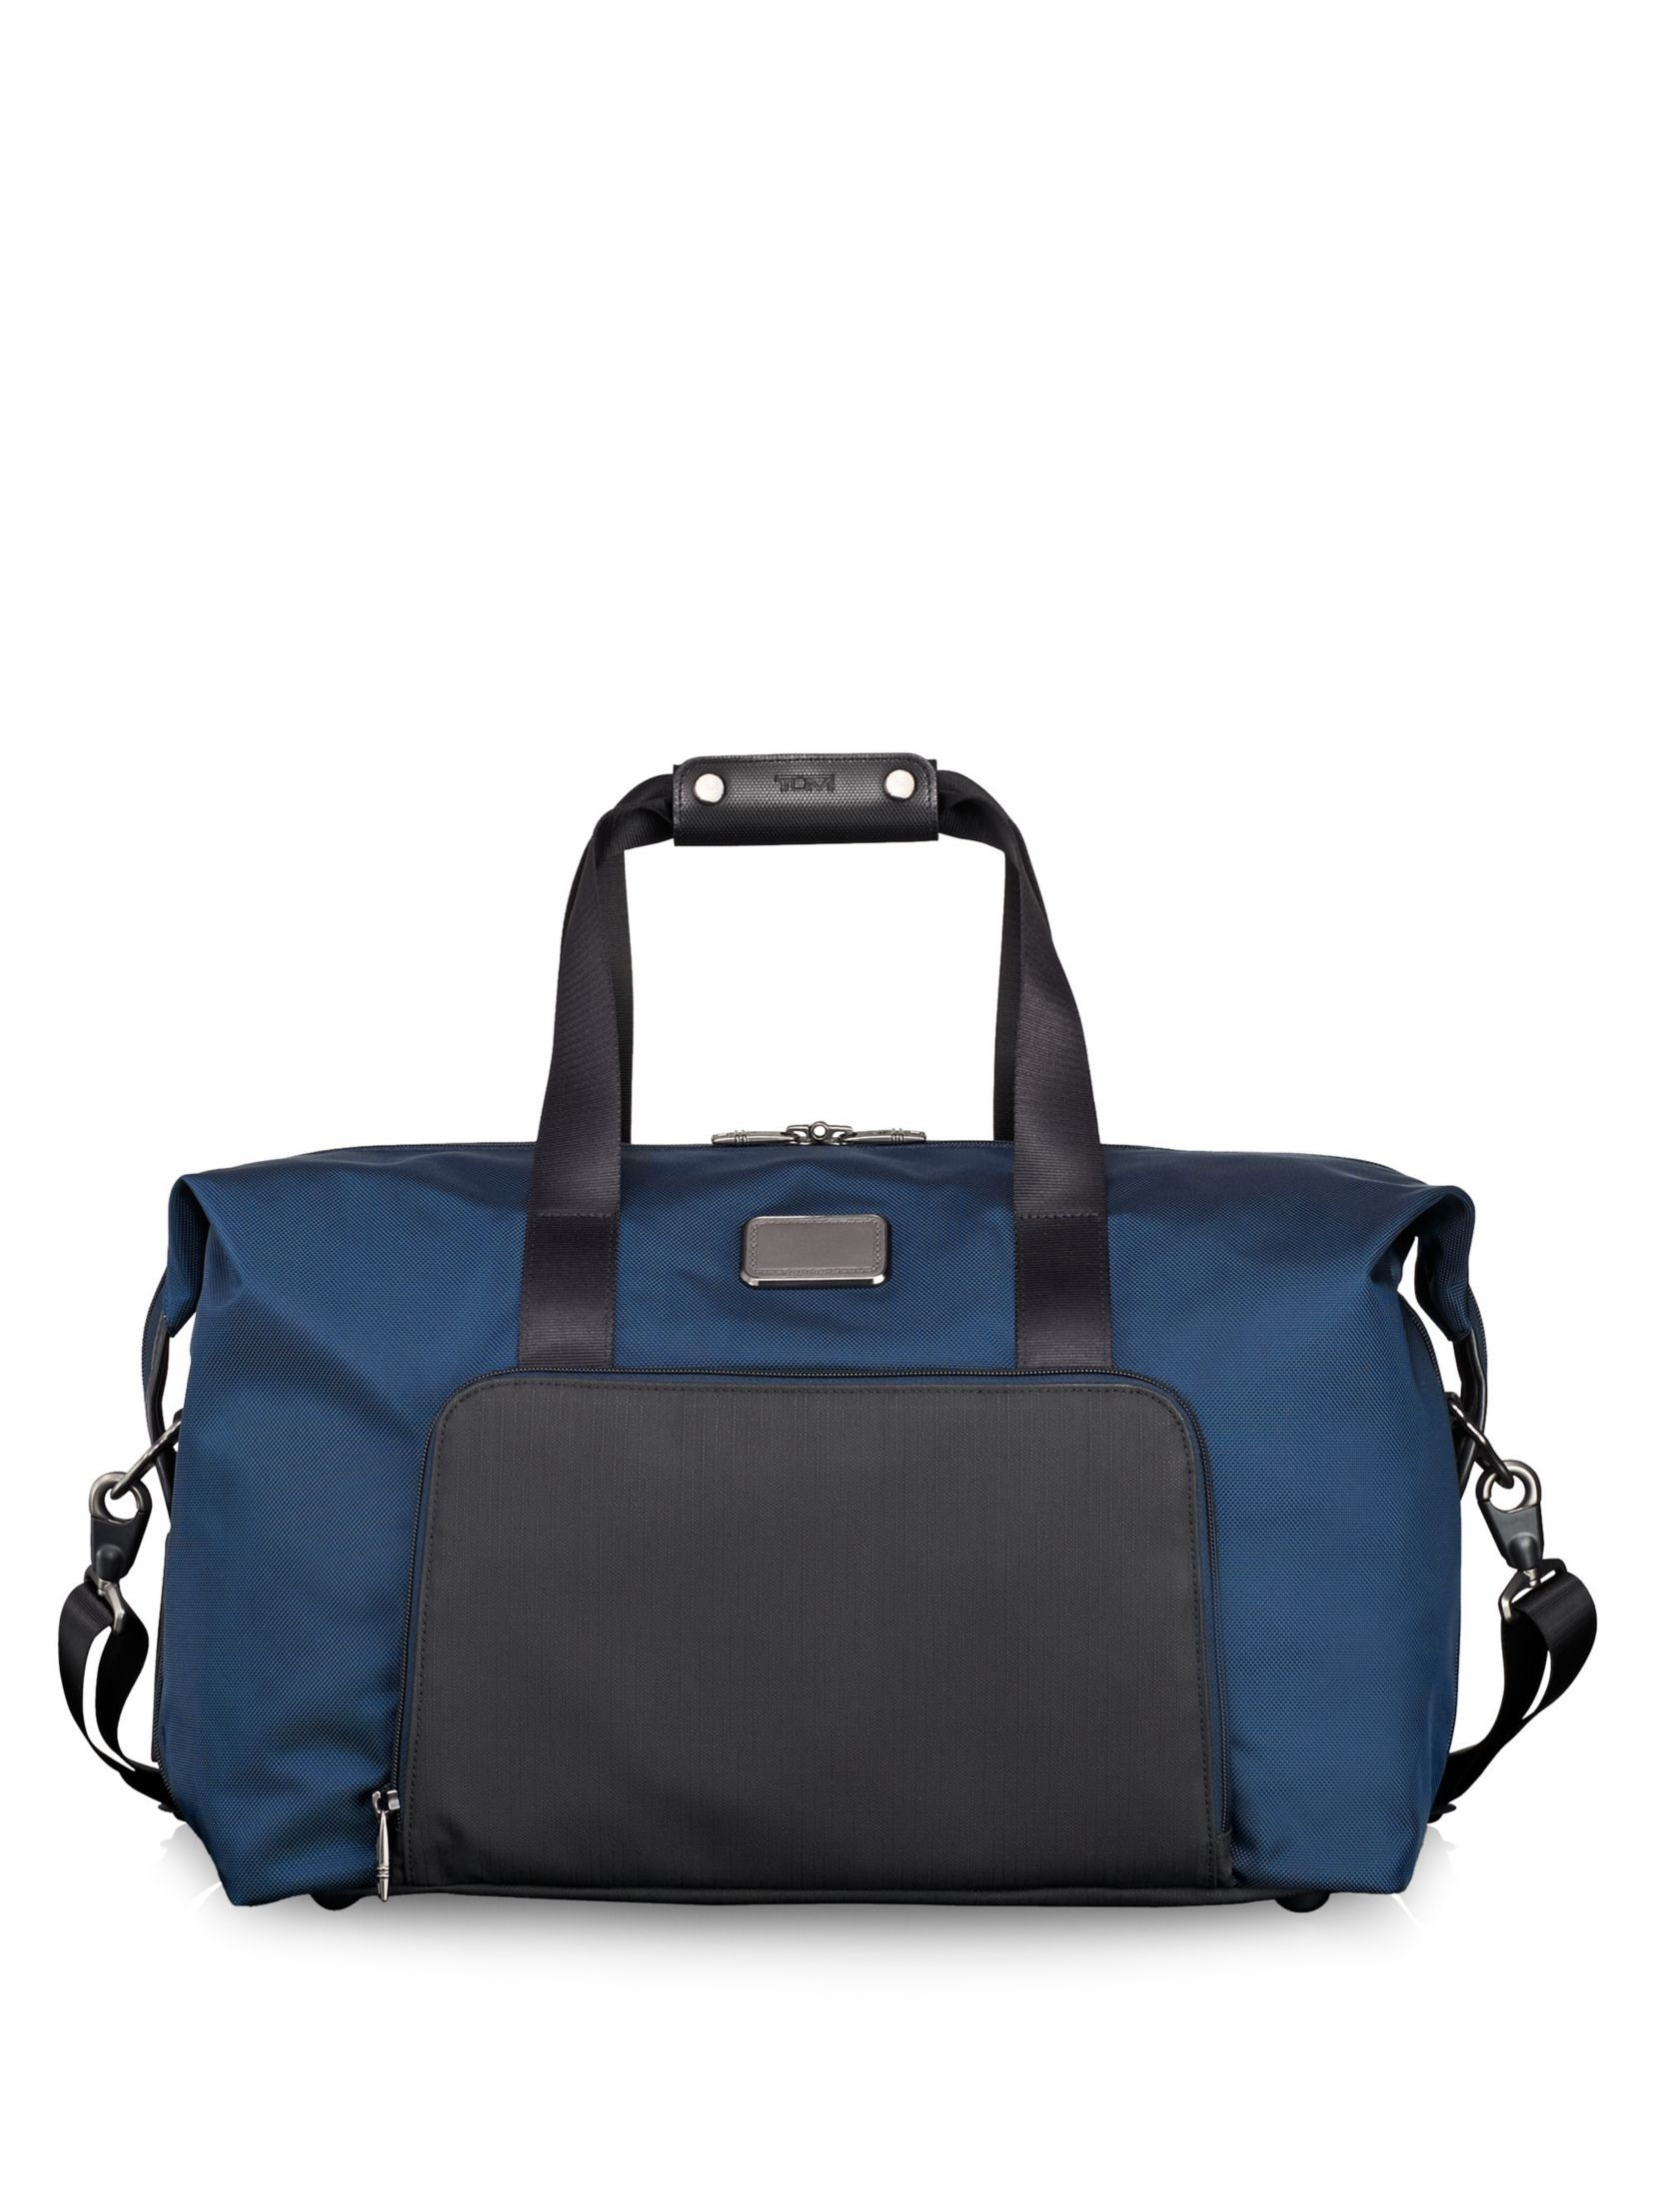 Tumi Double Expansion Duffel Bag